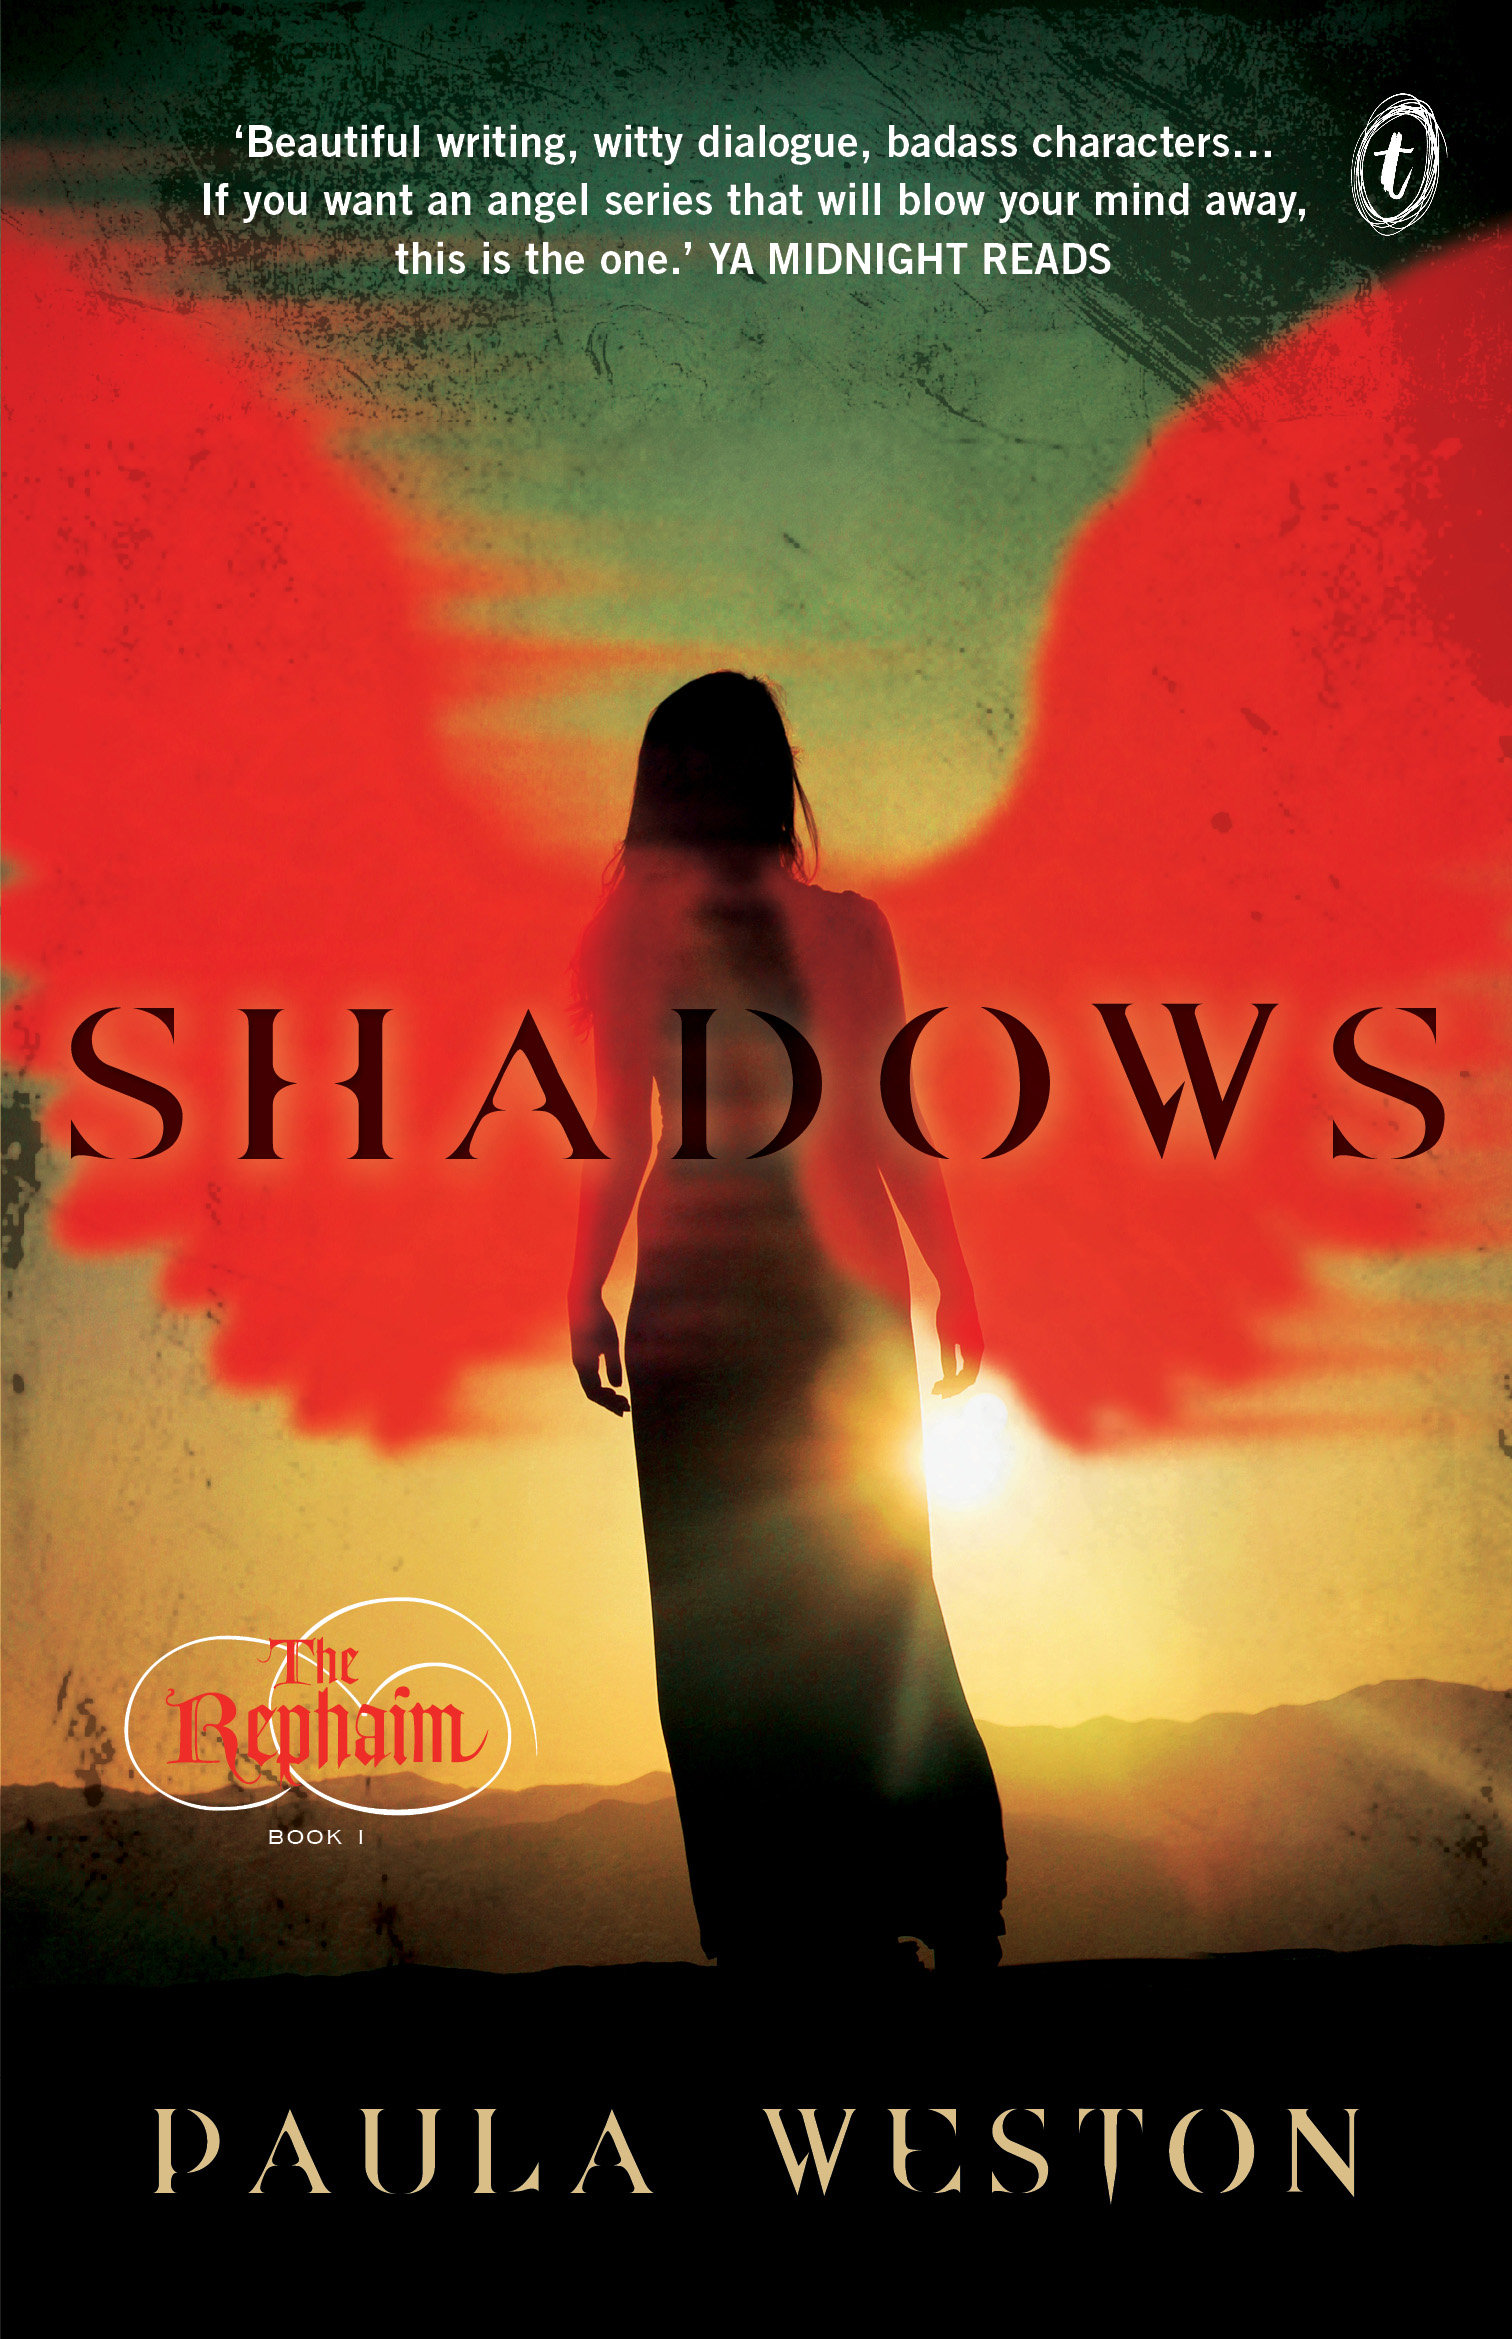 Shadows (The Rephaim Book I) by Paula Weston